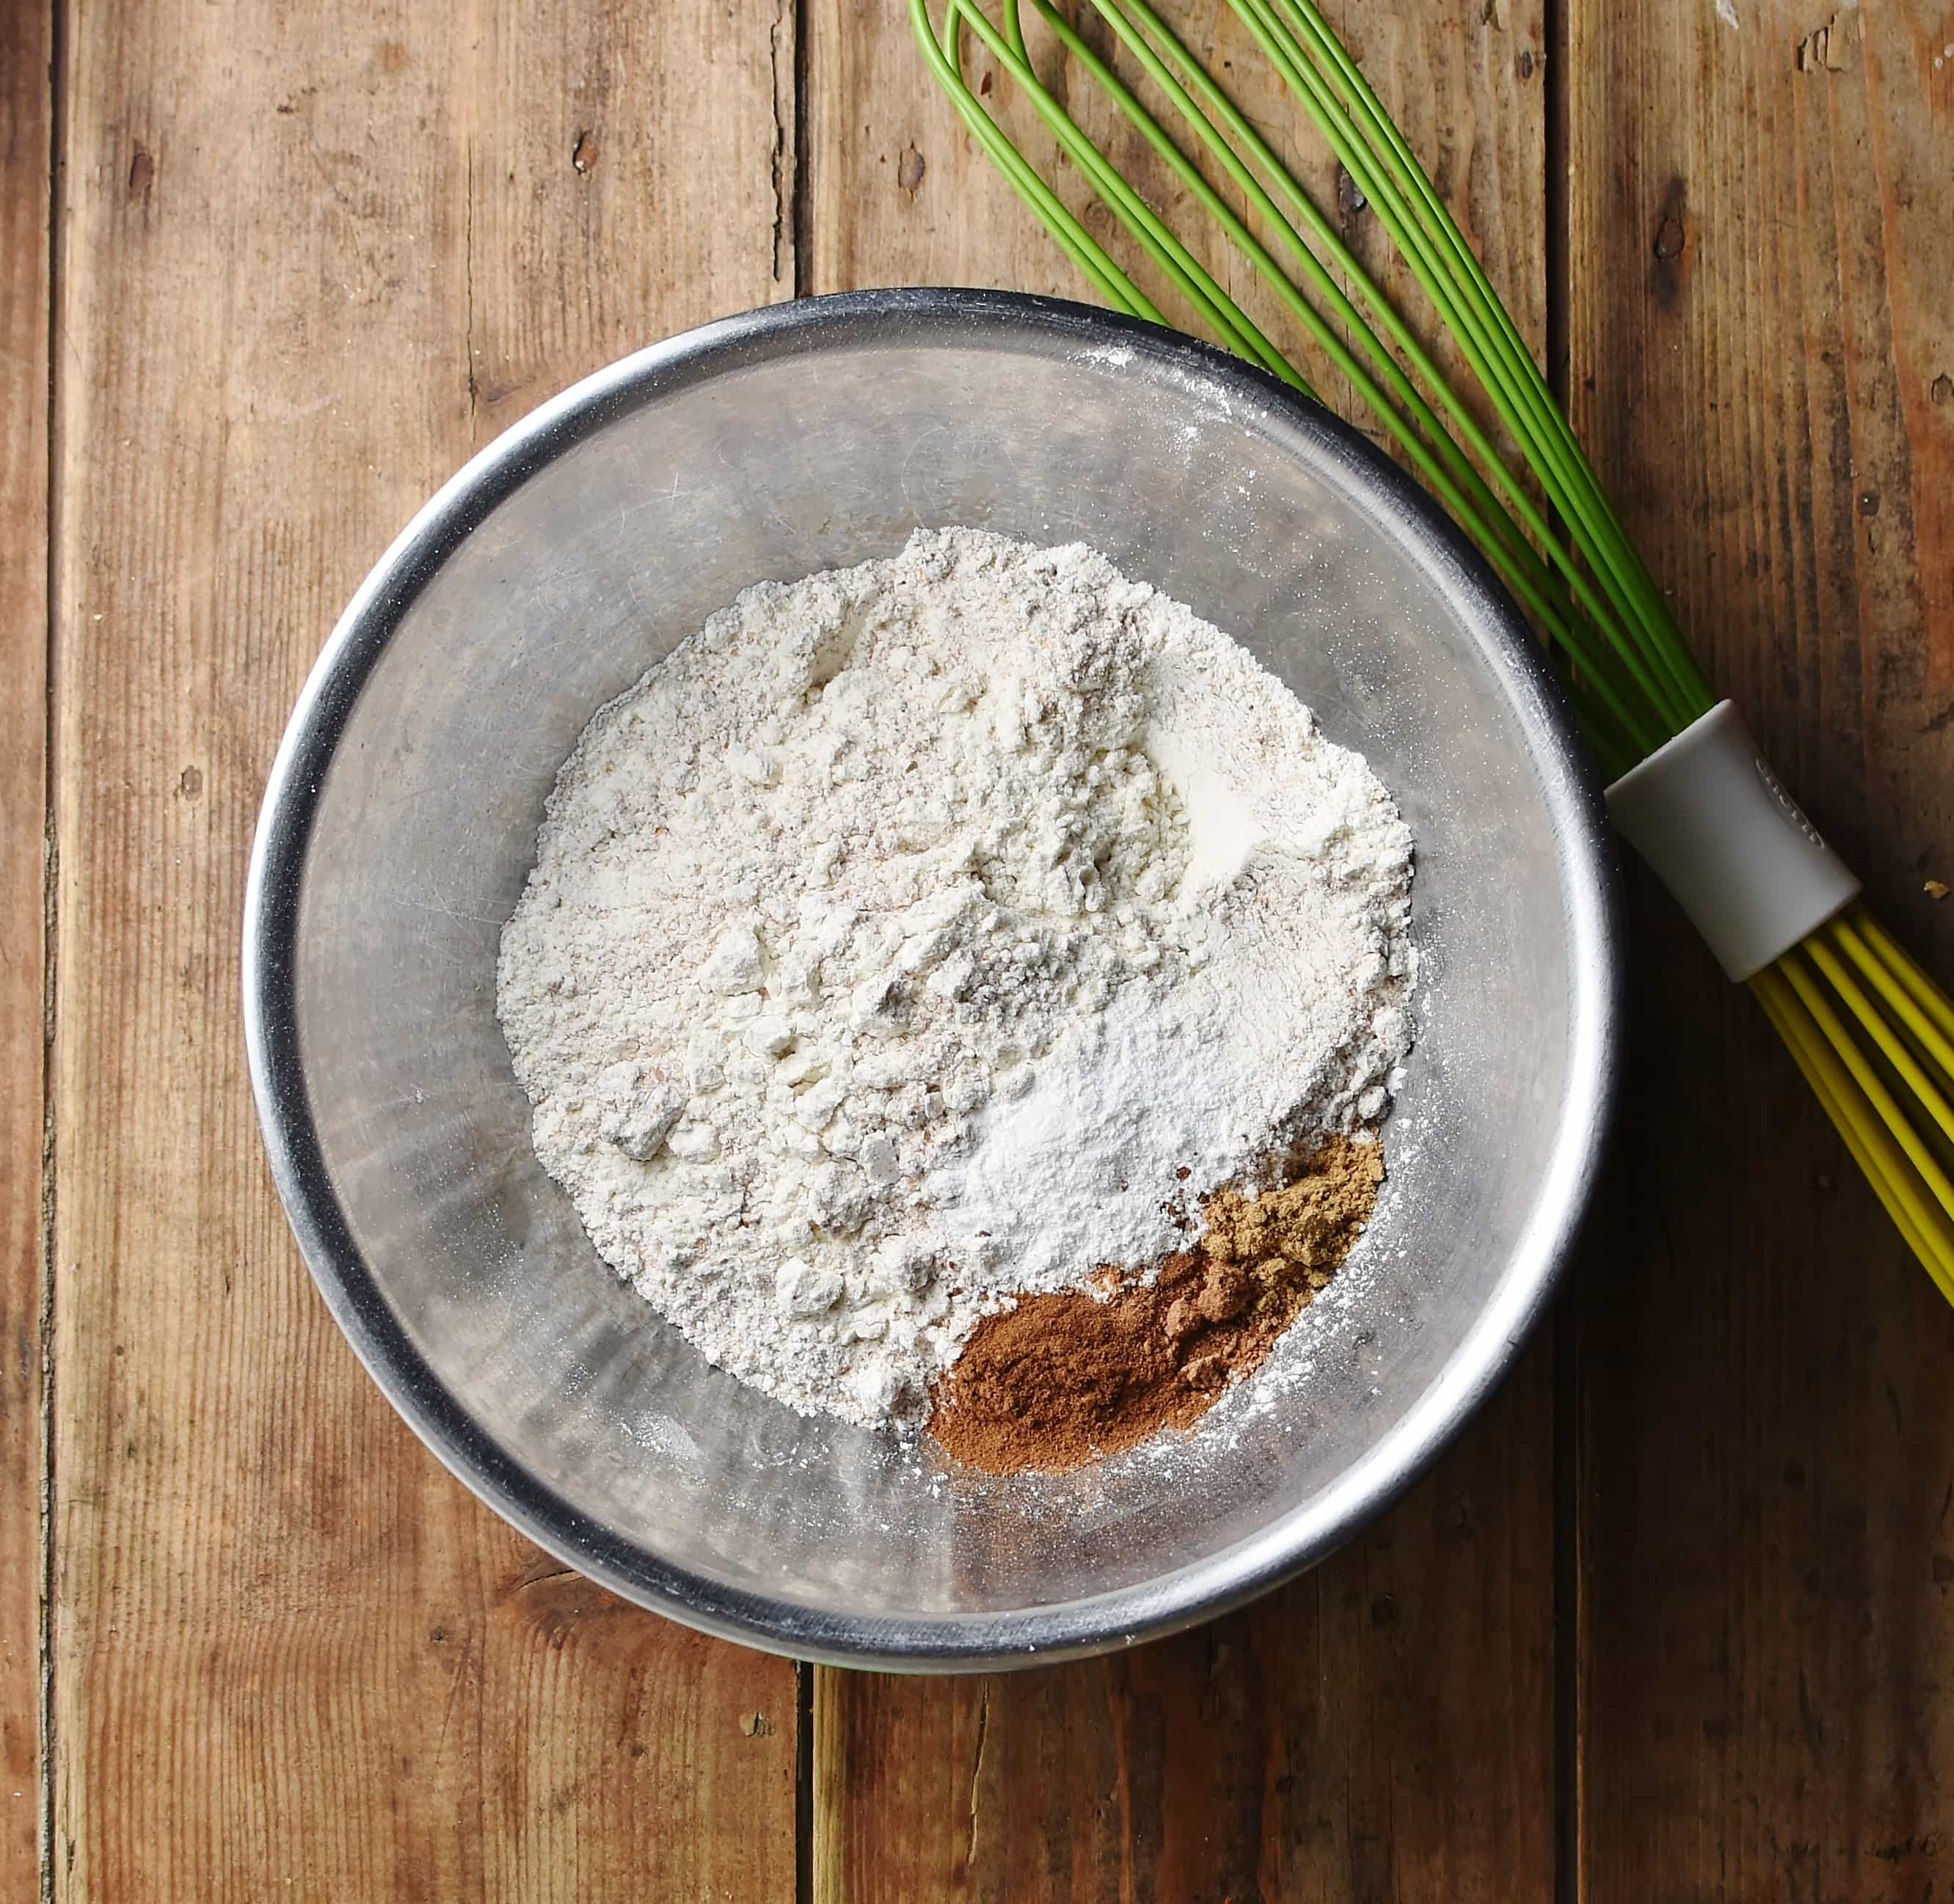 Flour and spices in metal bowl with green whisk in background.